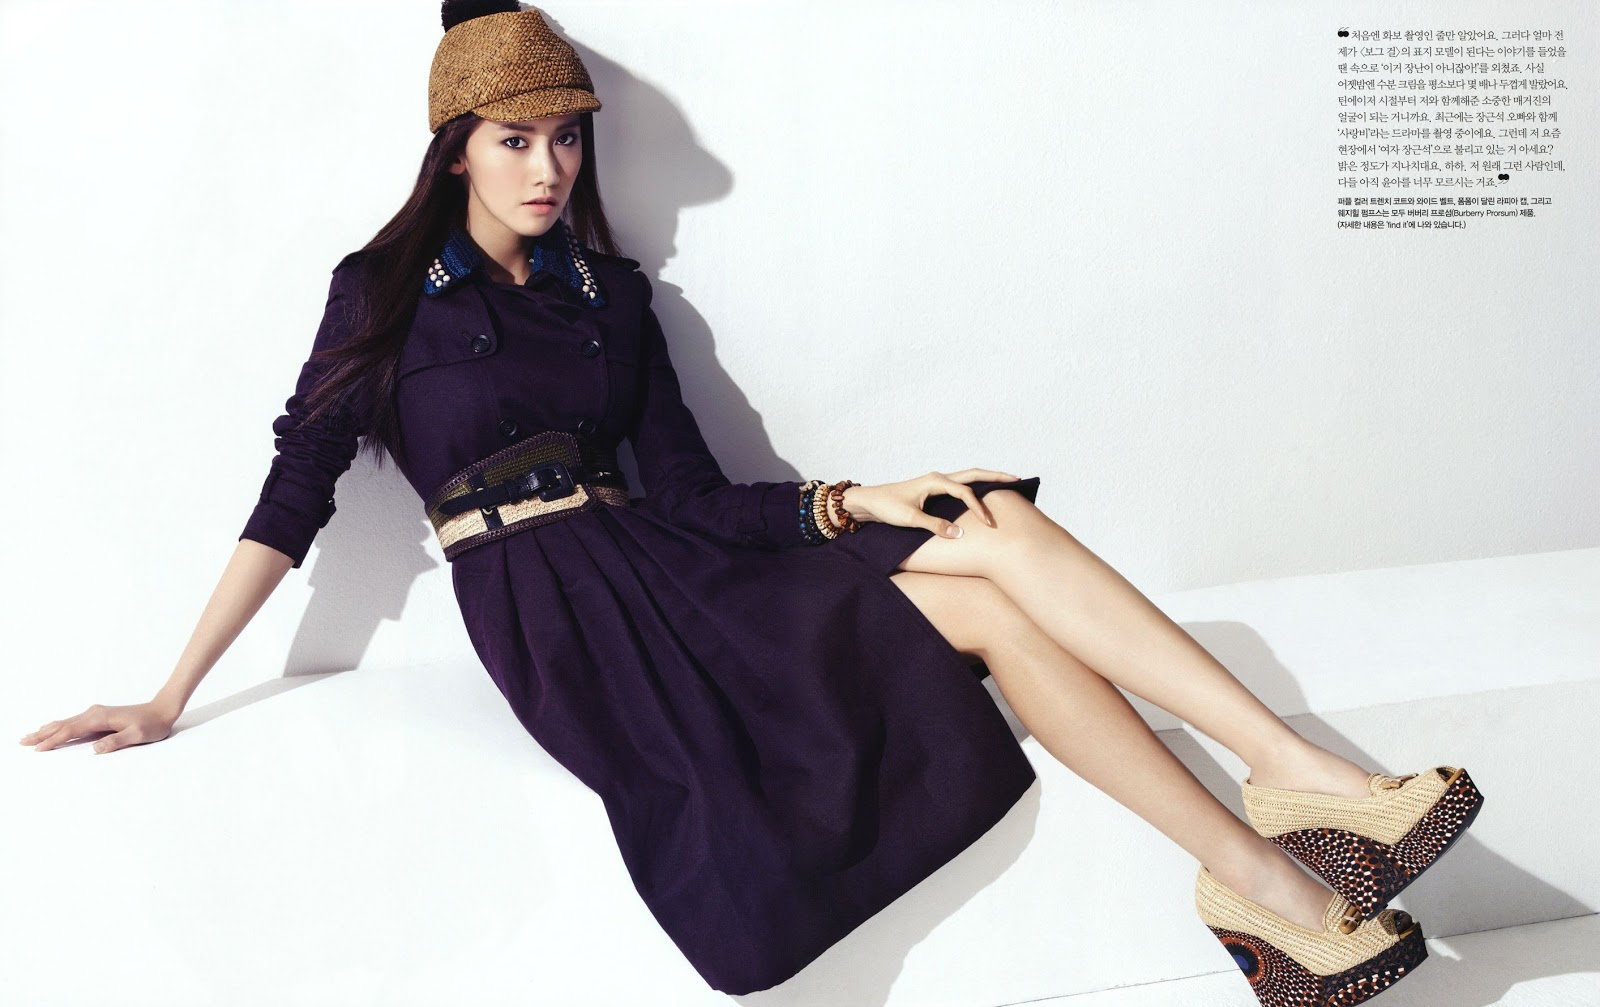 snsd yoona vogue girl wallpaper hd snsd yoona vogue girl 1600x1007